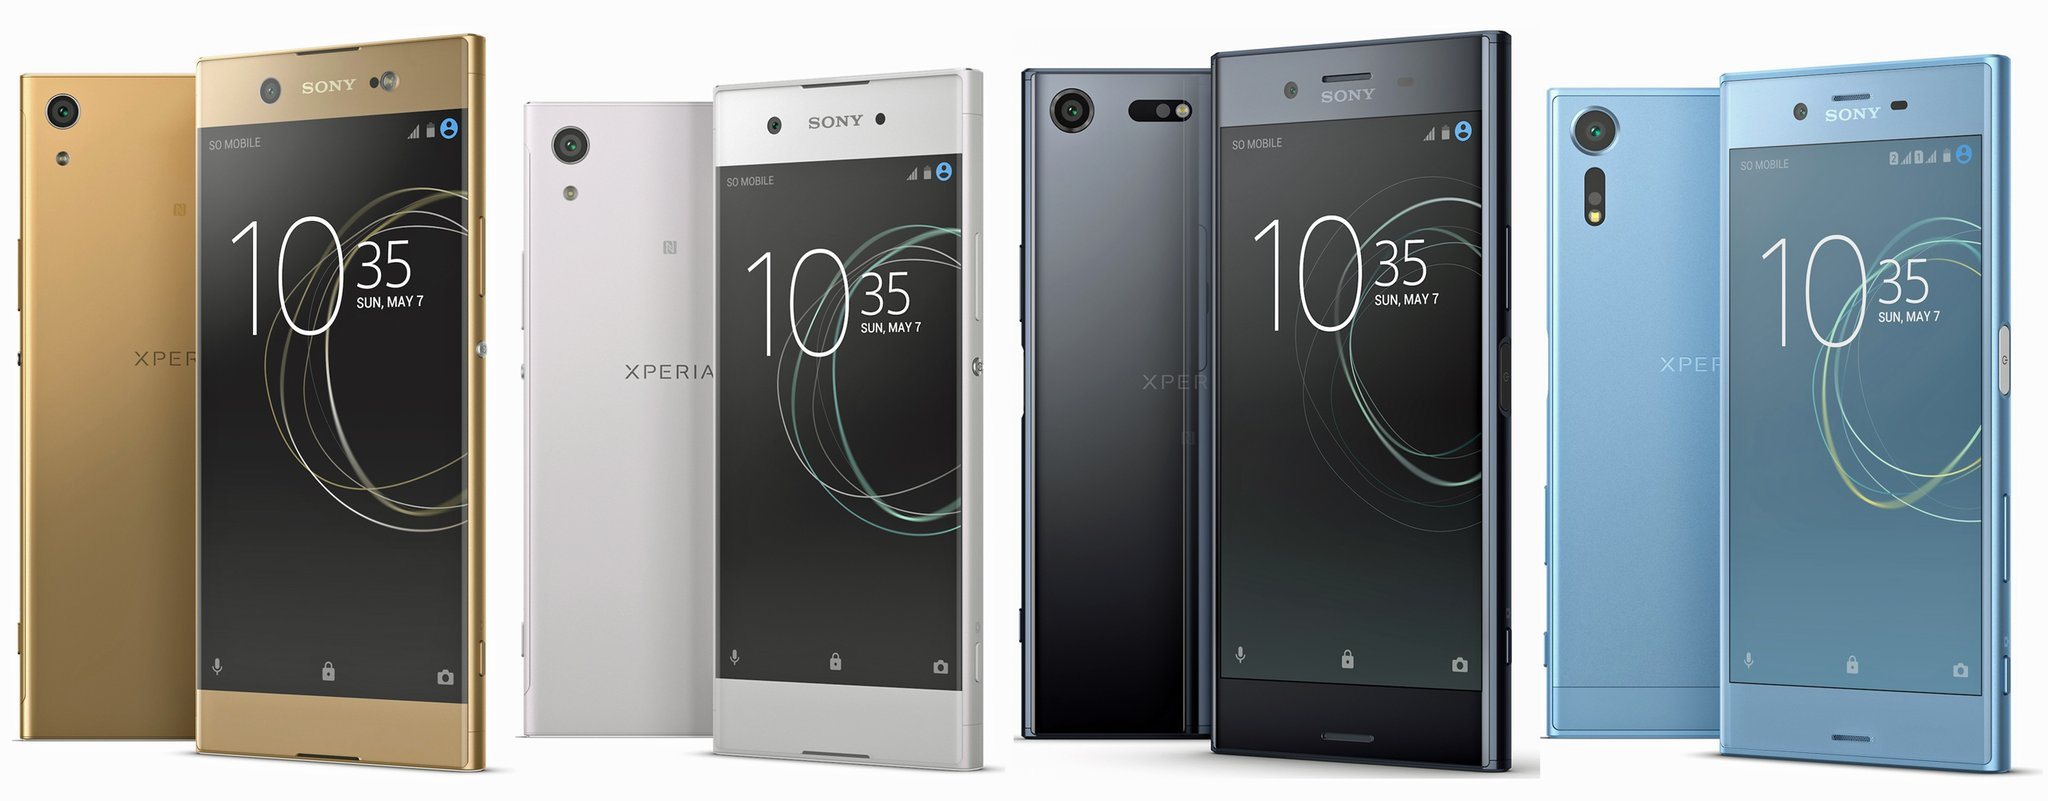 Android Leak MWC2017 Smartphone Sony